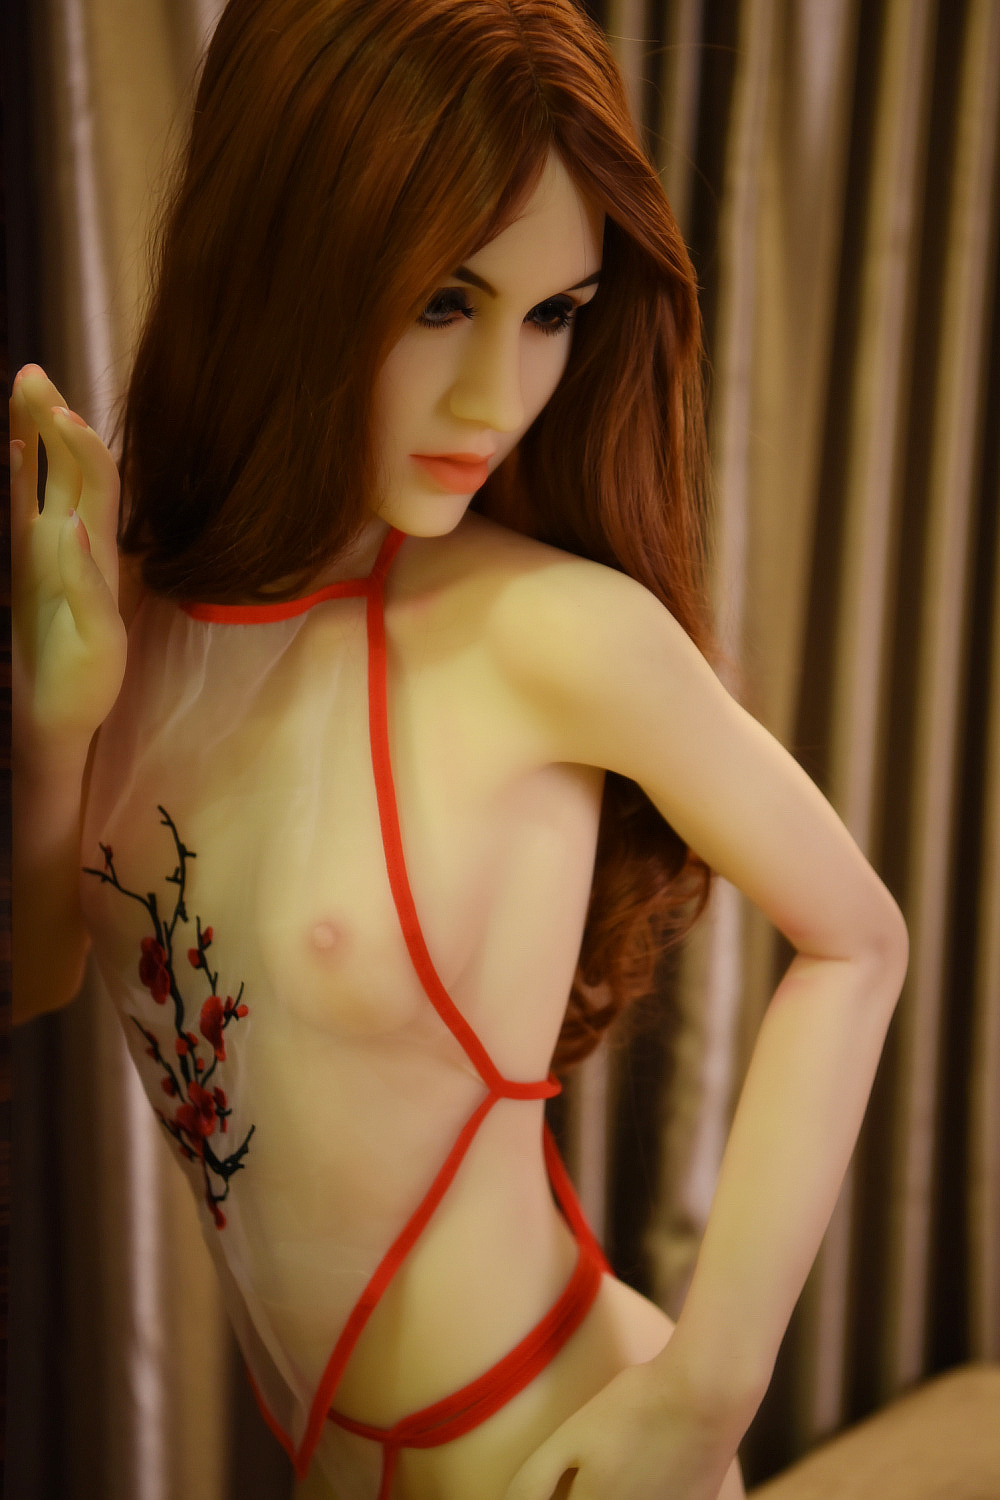 poupée wm doll real love dolls silicone sex doll realiste adulte taille reelle 30 1 - Adoption